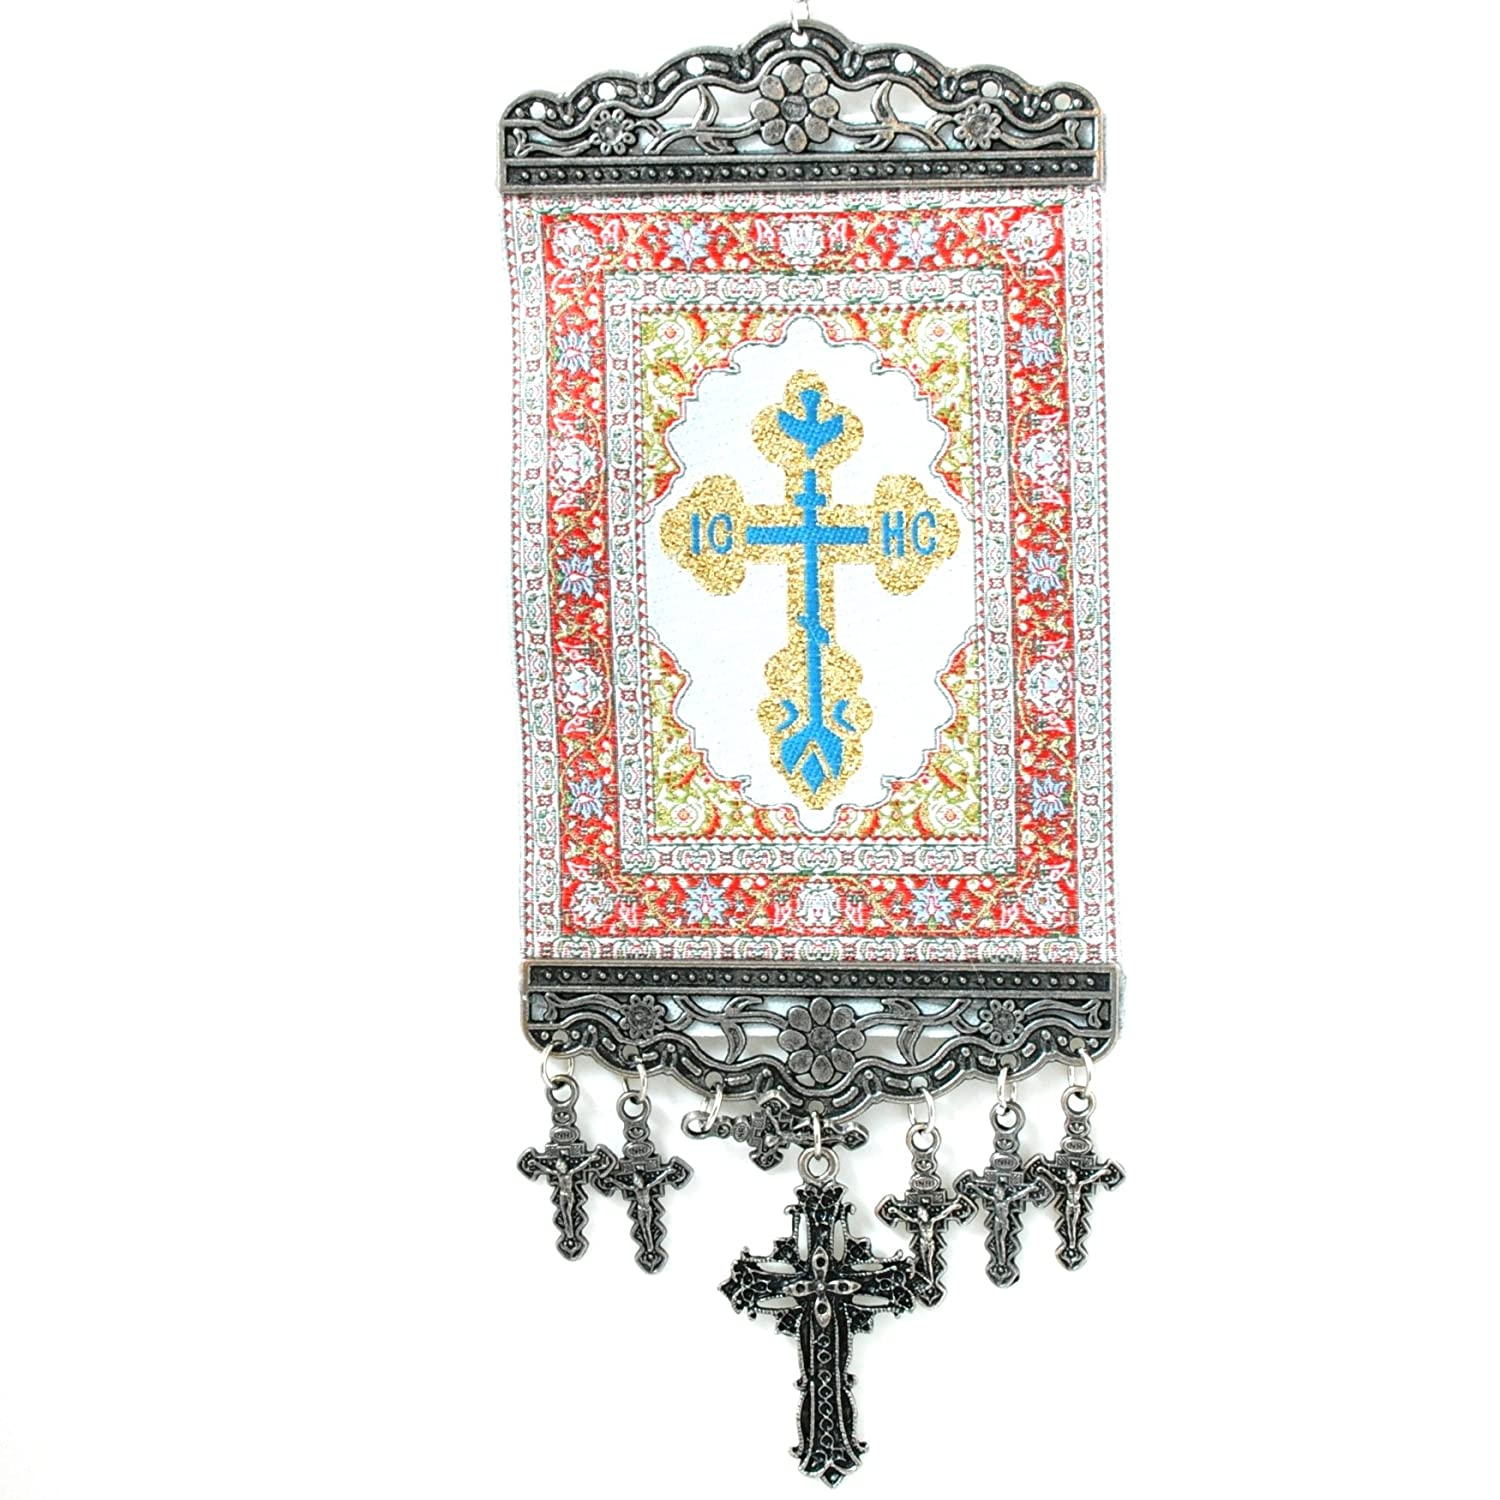 Orthodox, Cross Wall Hanging Tapestry Banner N/A 9118